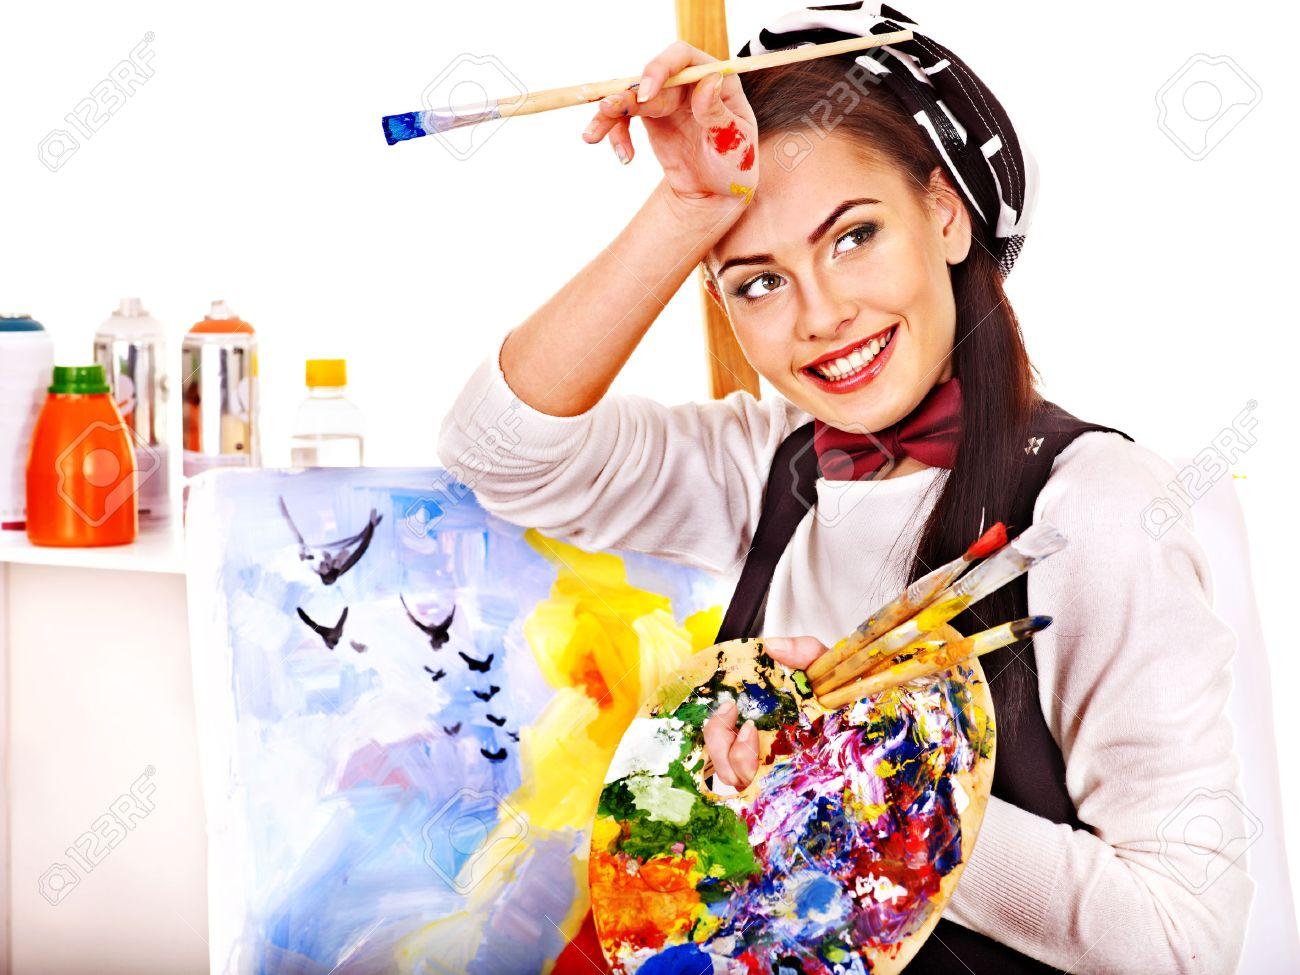 artist palette images stock pictures royalty free artist